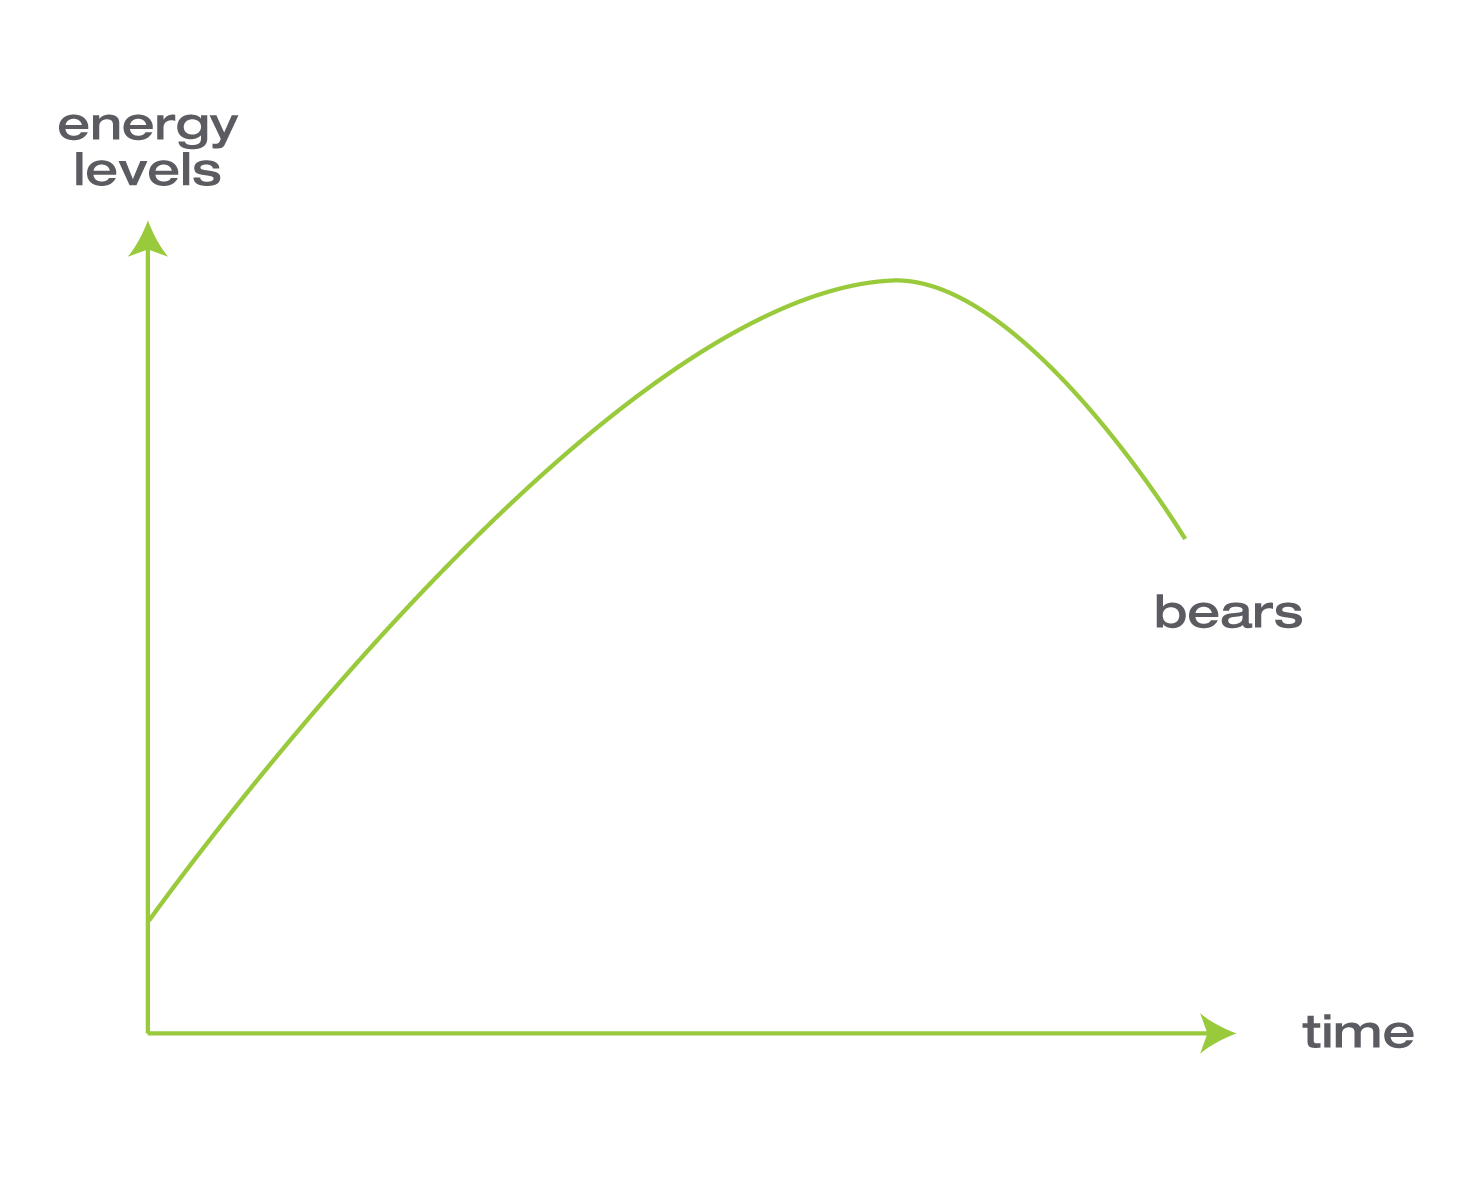 energy levels bears